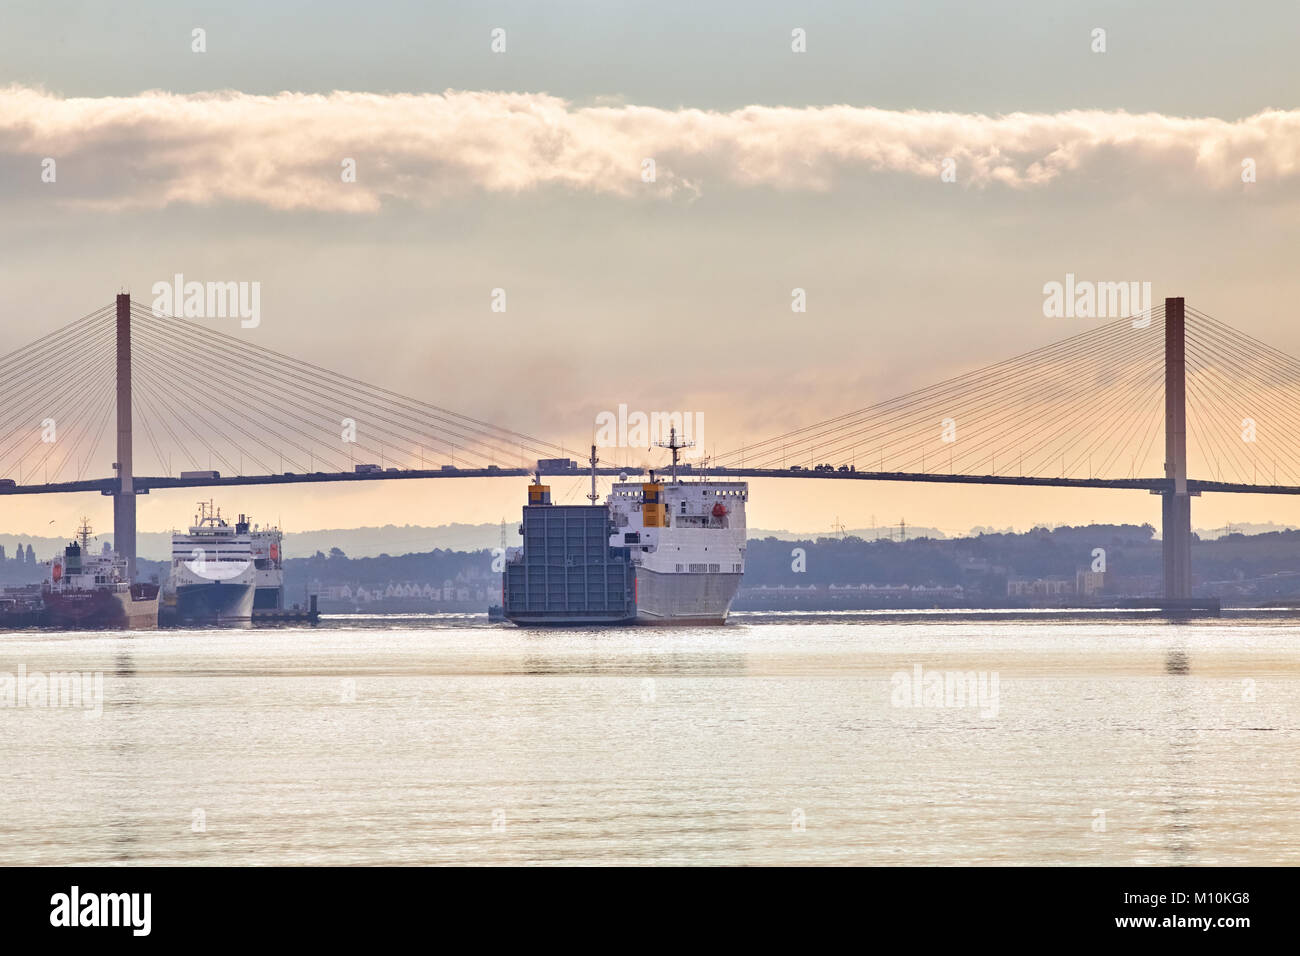 The ship 'Celestine' leaving London, approaching the Dartford Bridge in the early morning. Photographed from the Stock Photo